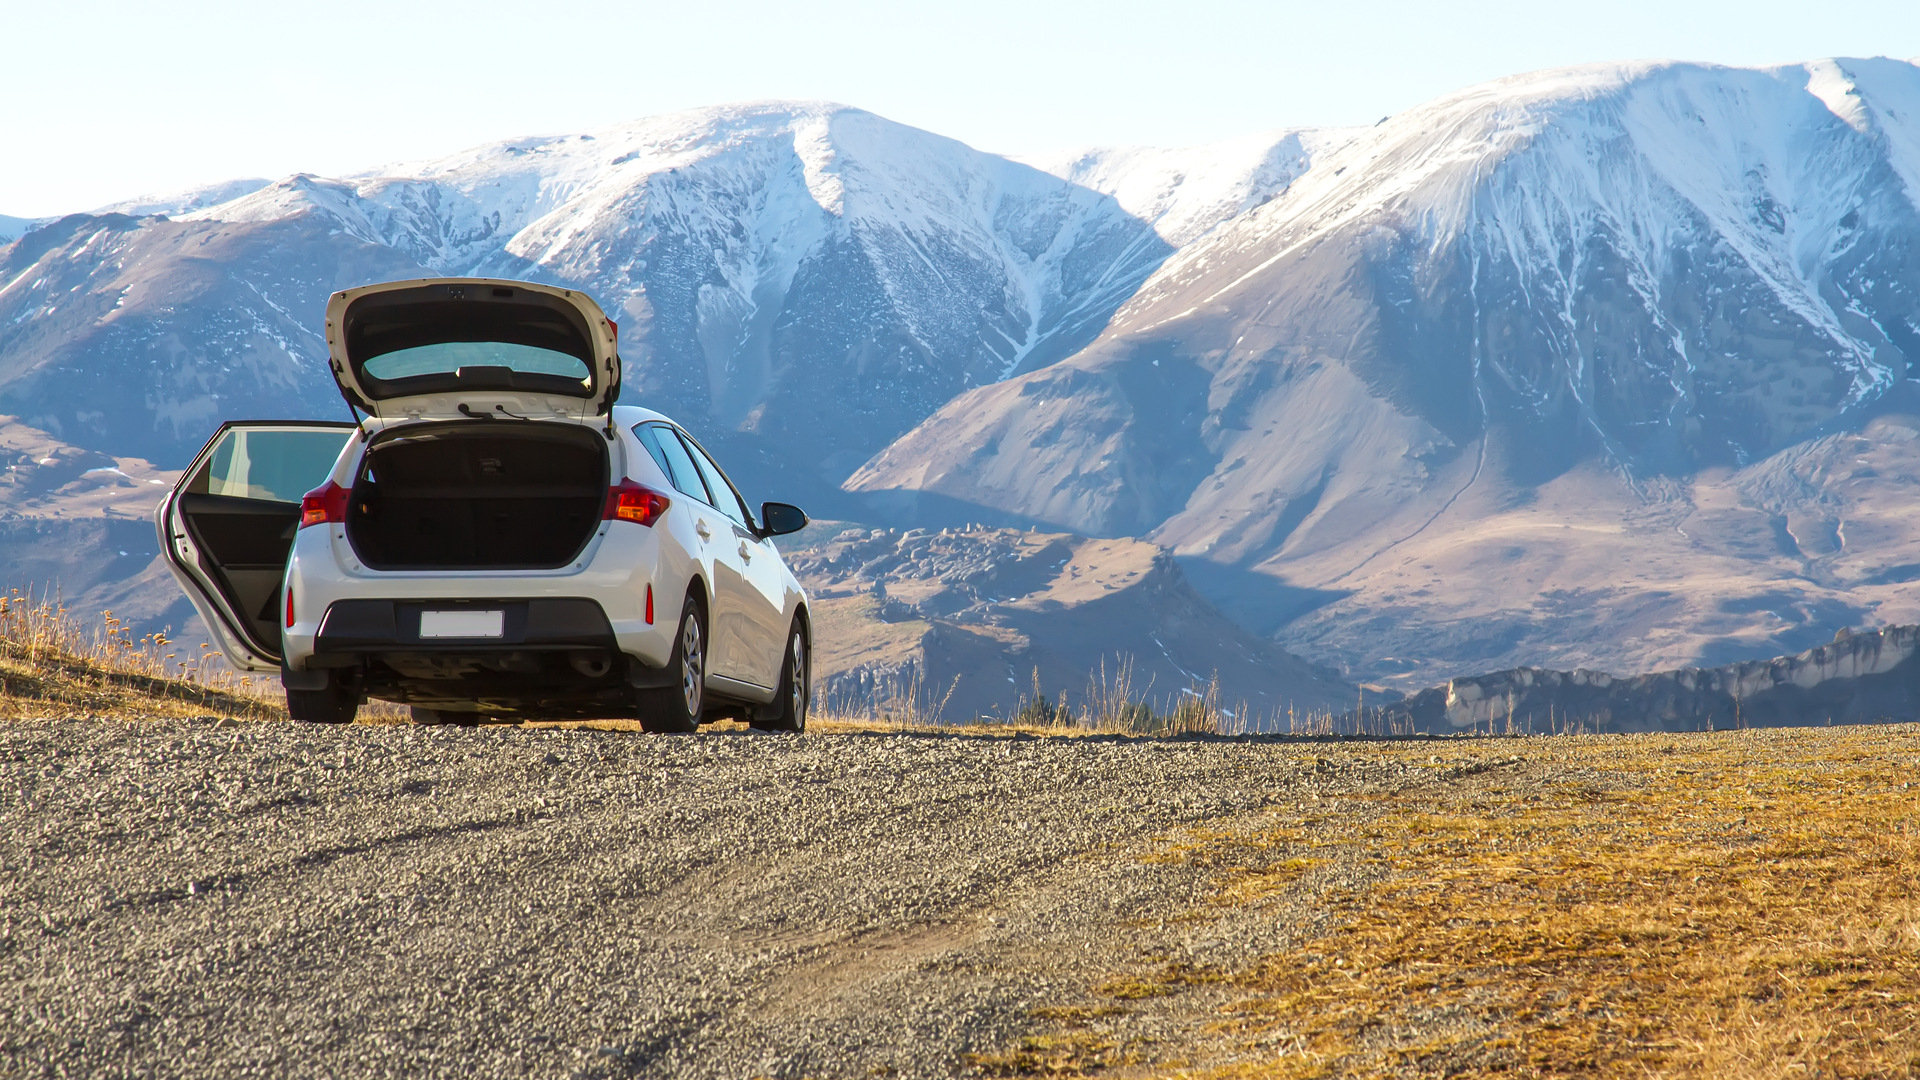 Top 10 Tips for Renting A Vehicle in Hawaii